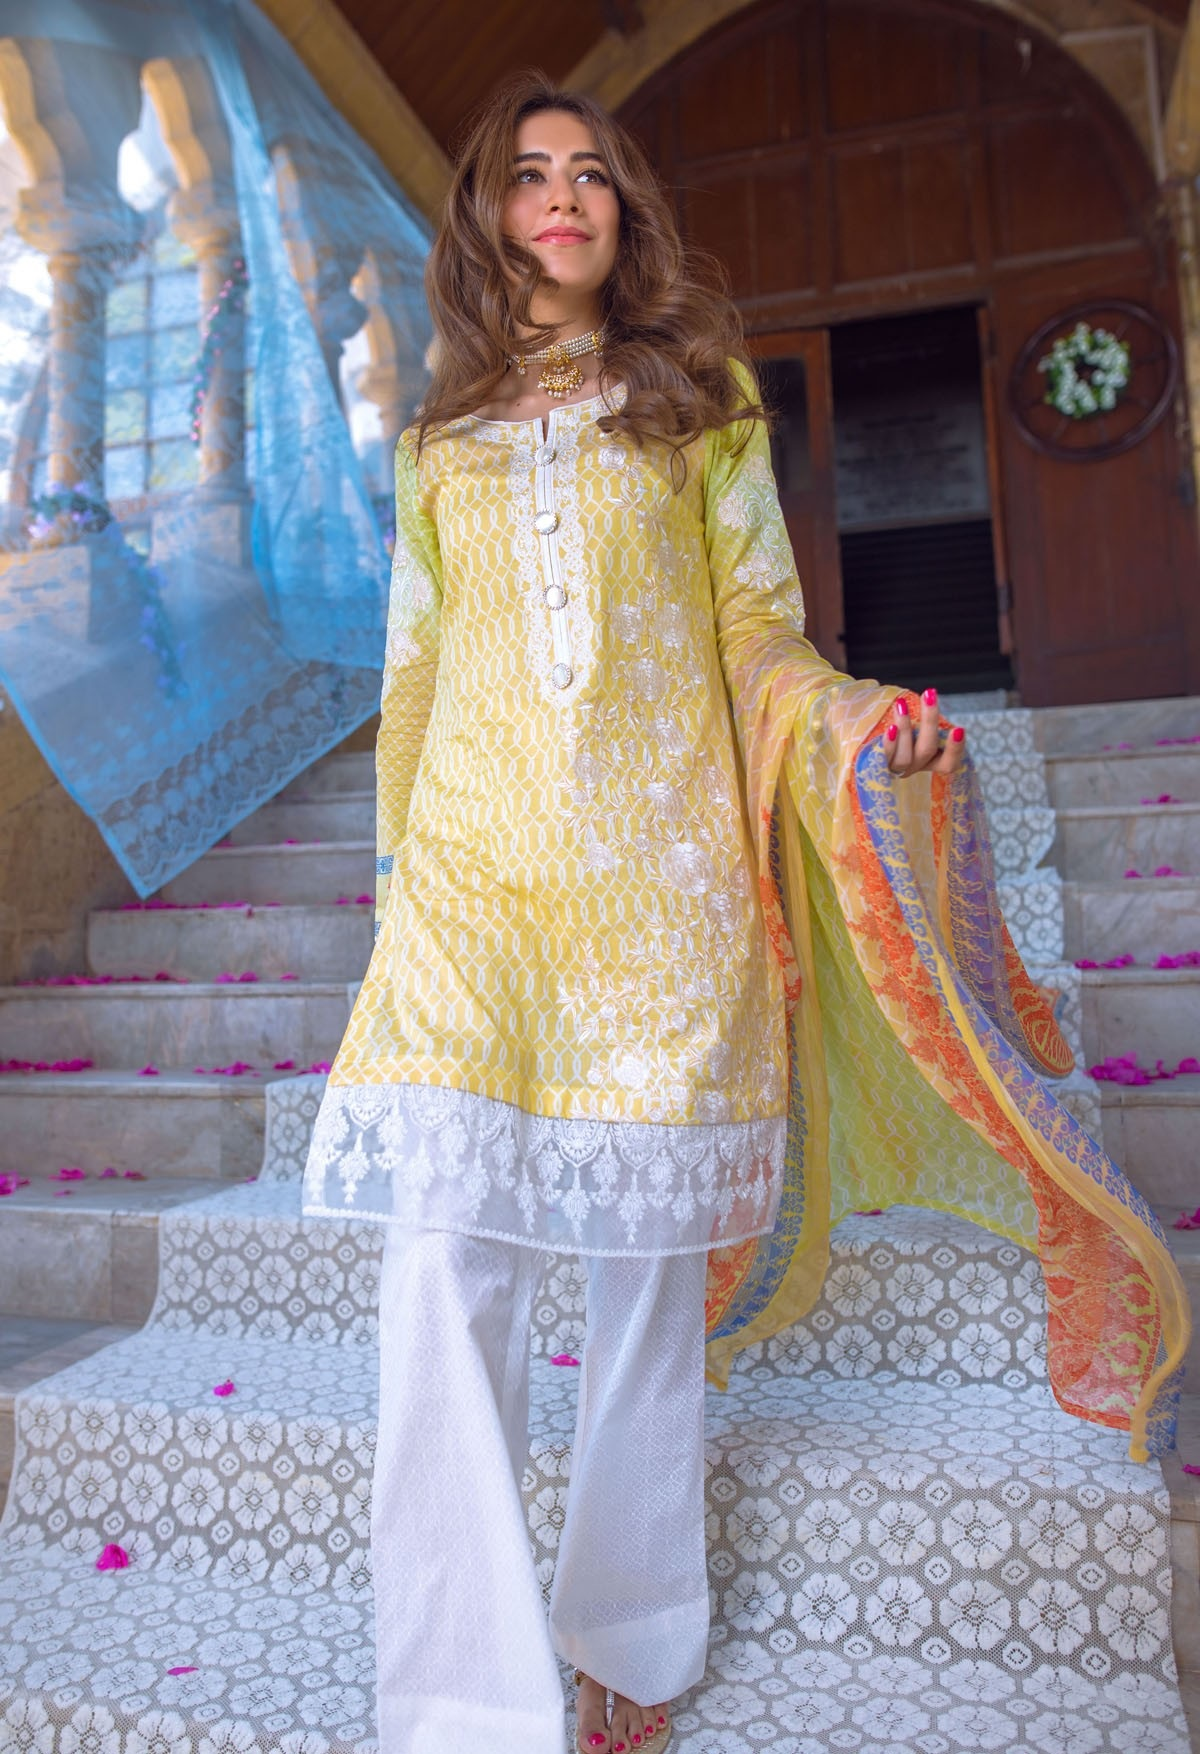 Syra Shehroz looking gorgeous in this beautiful Eid Outfit by Alkaram Festival Collection